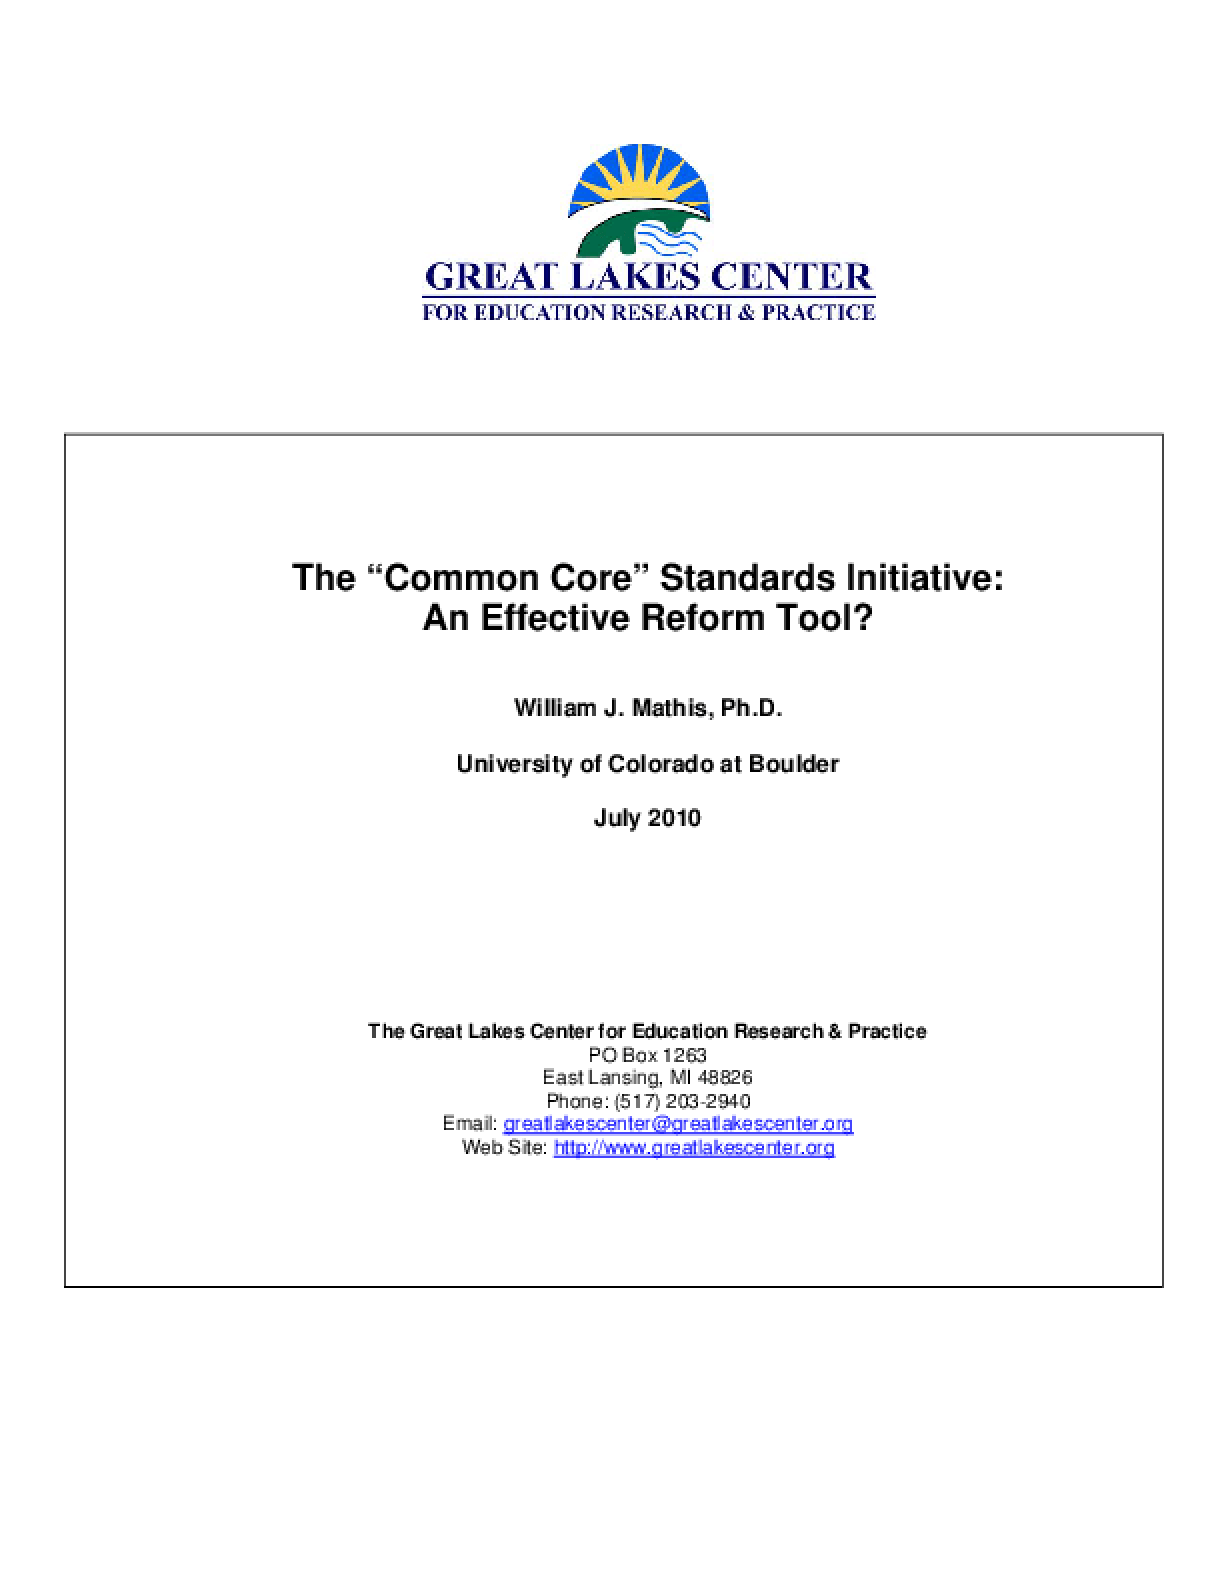 Common Core Standards Initiative: An Effective Reform Tool?, The?